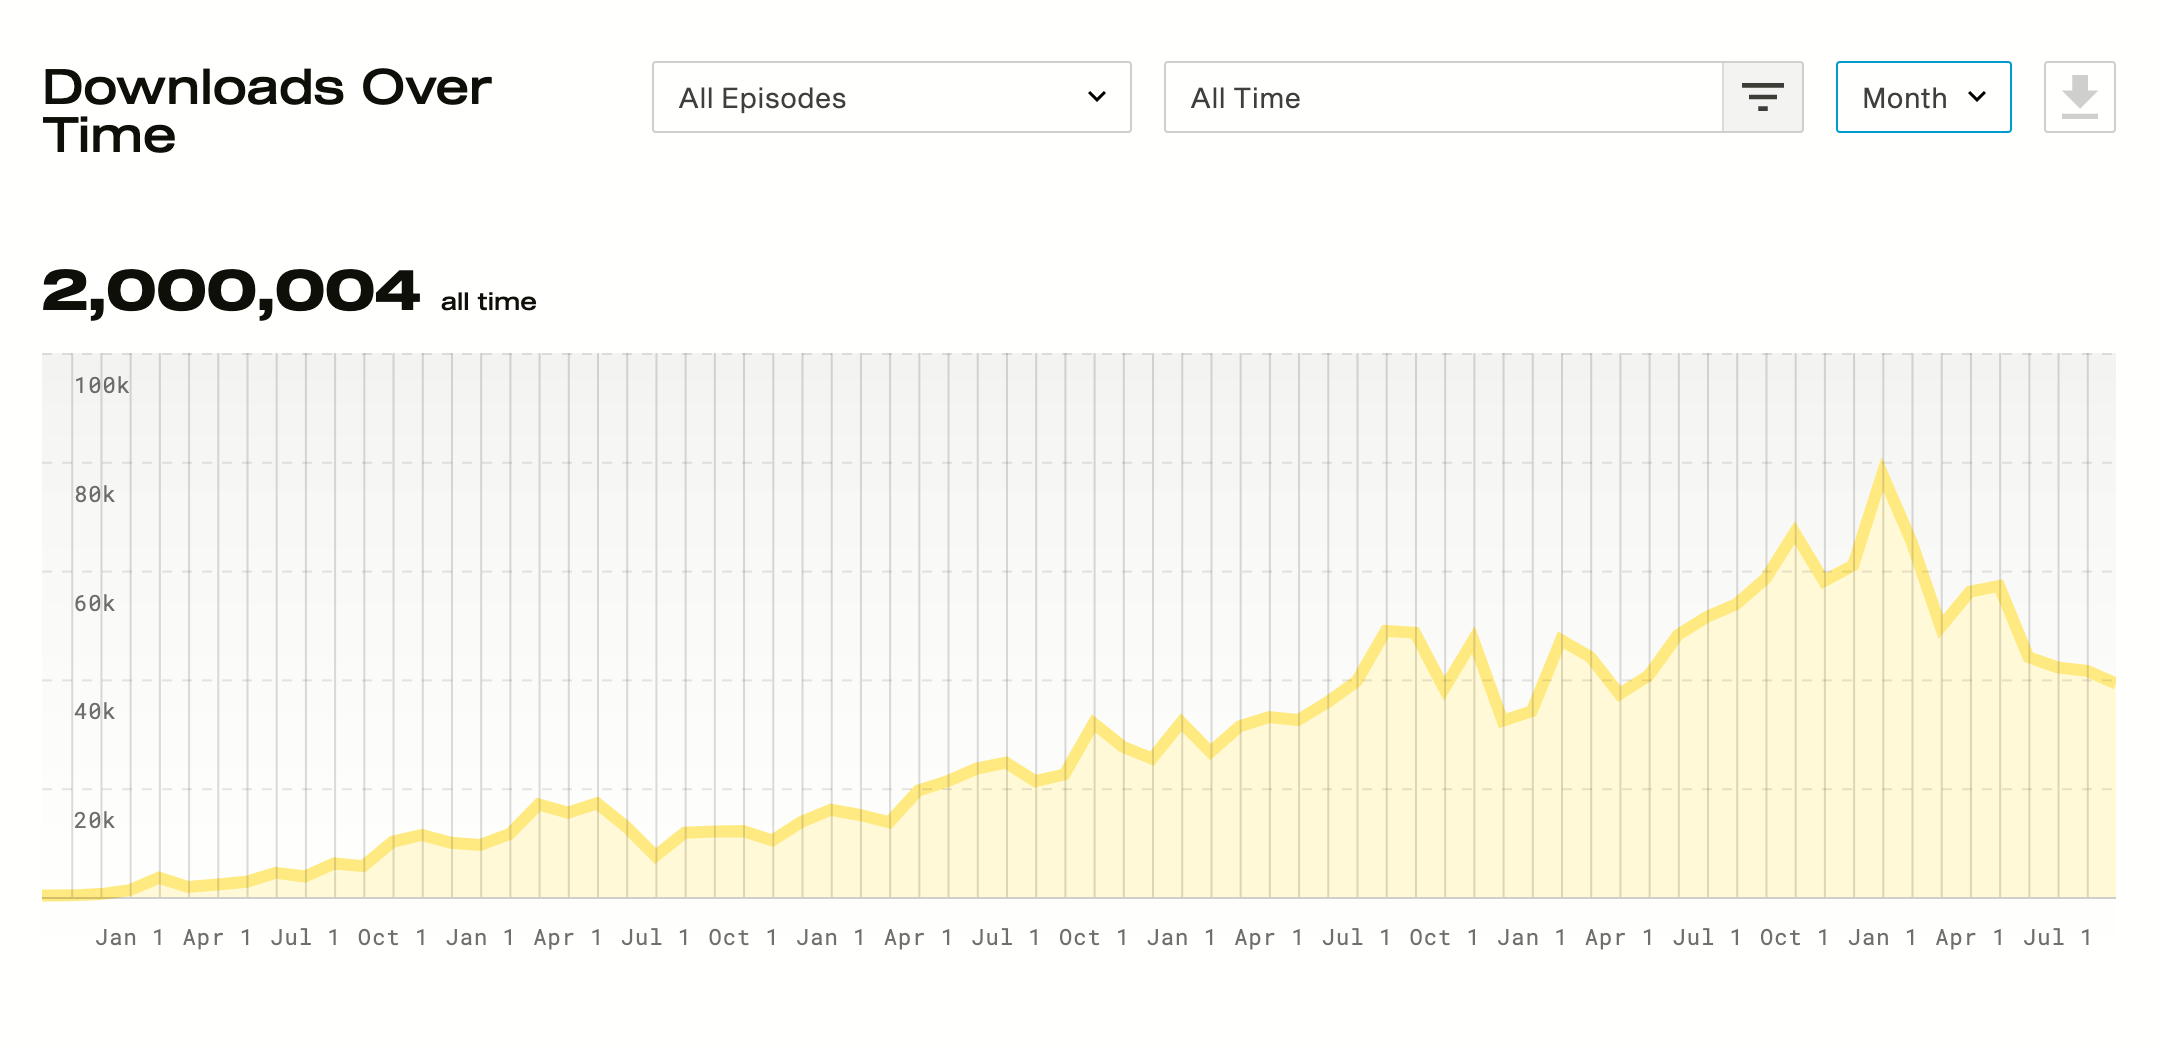 Podcast downloads over time